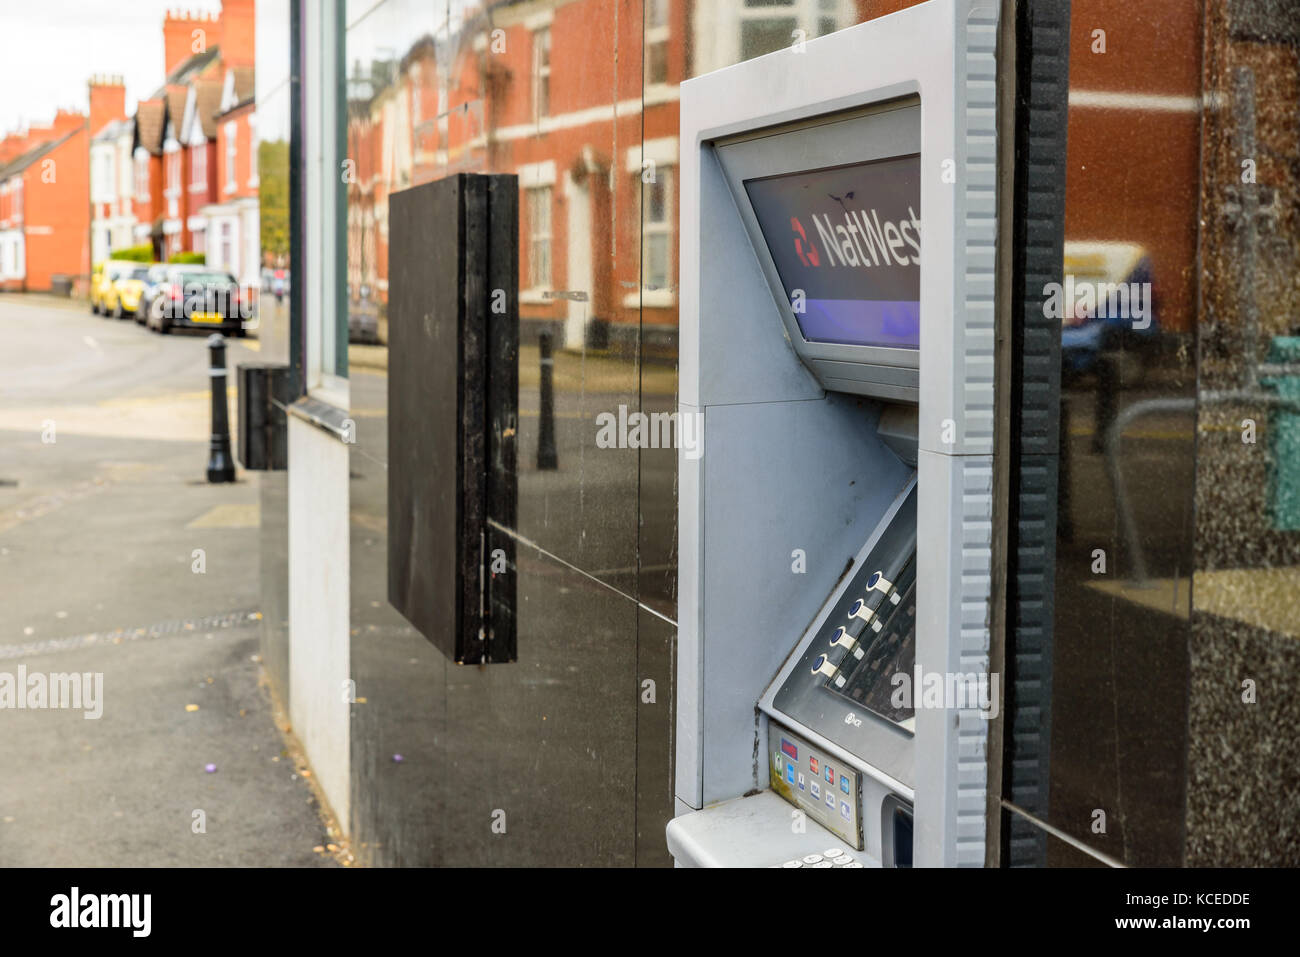 Northampton UK October 3, 2017: Natwest bank ATM closed down with wooden board Northampton - Stock Image